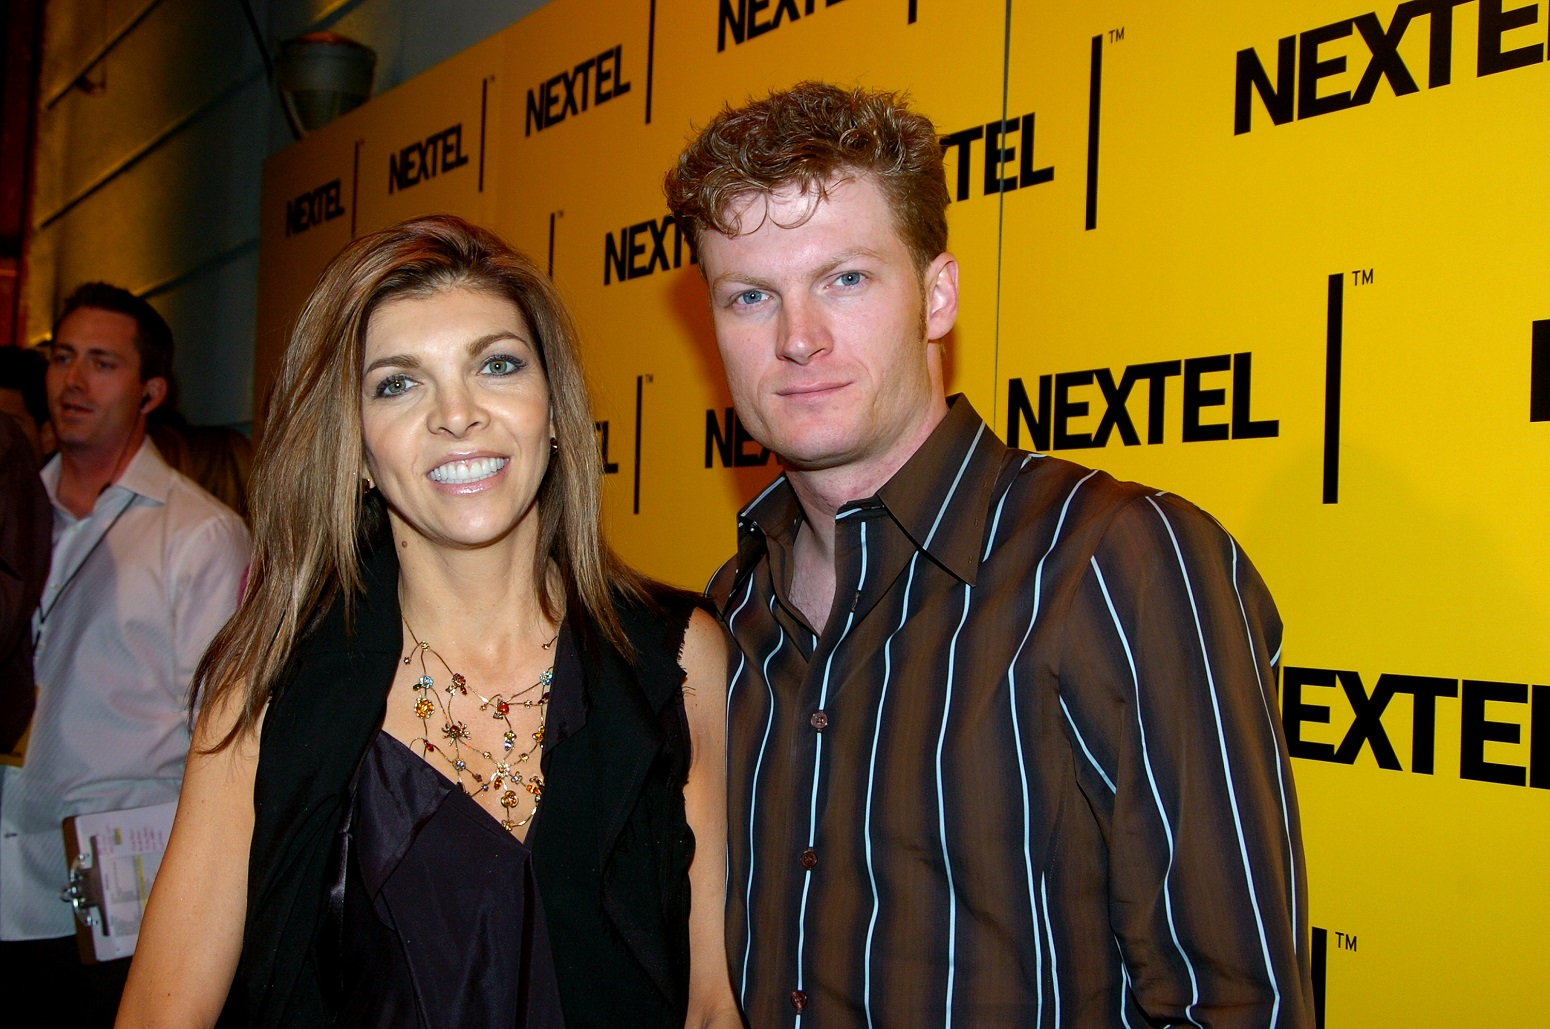 Dale Earnhardt Jr.'s stepmother ruins family business